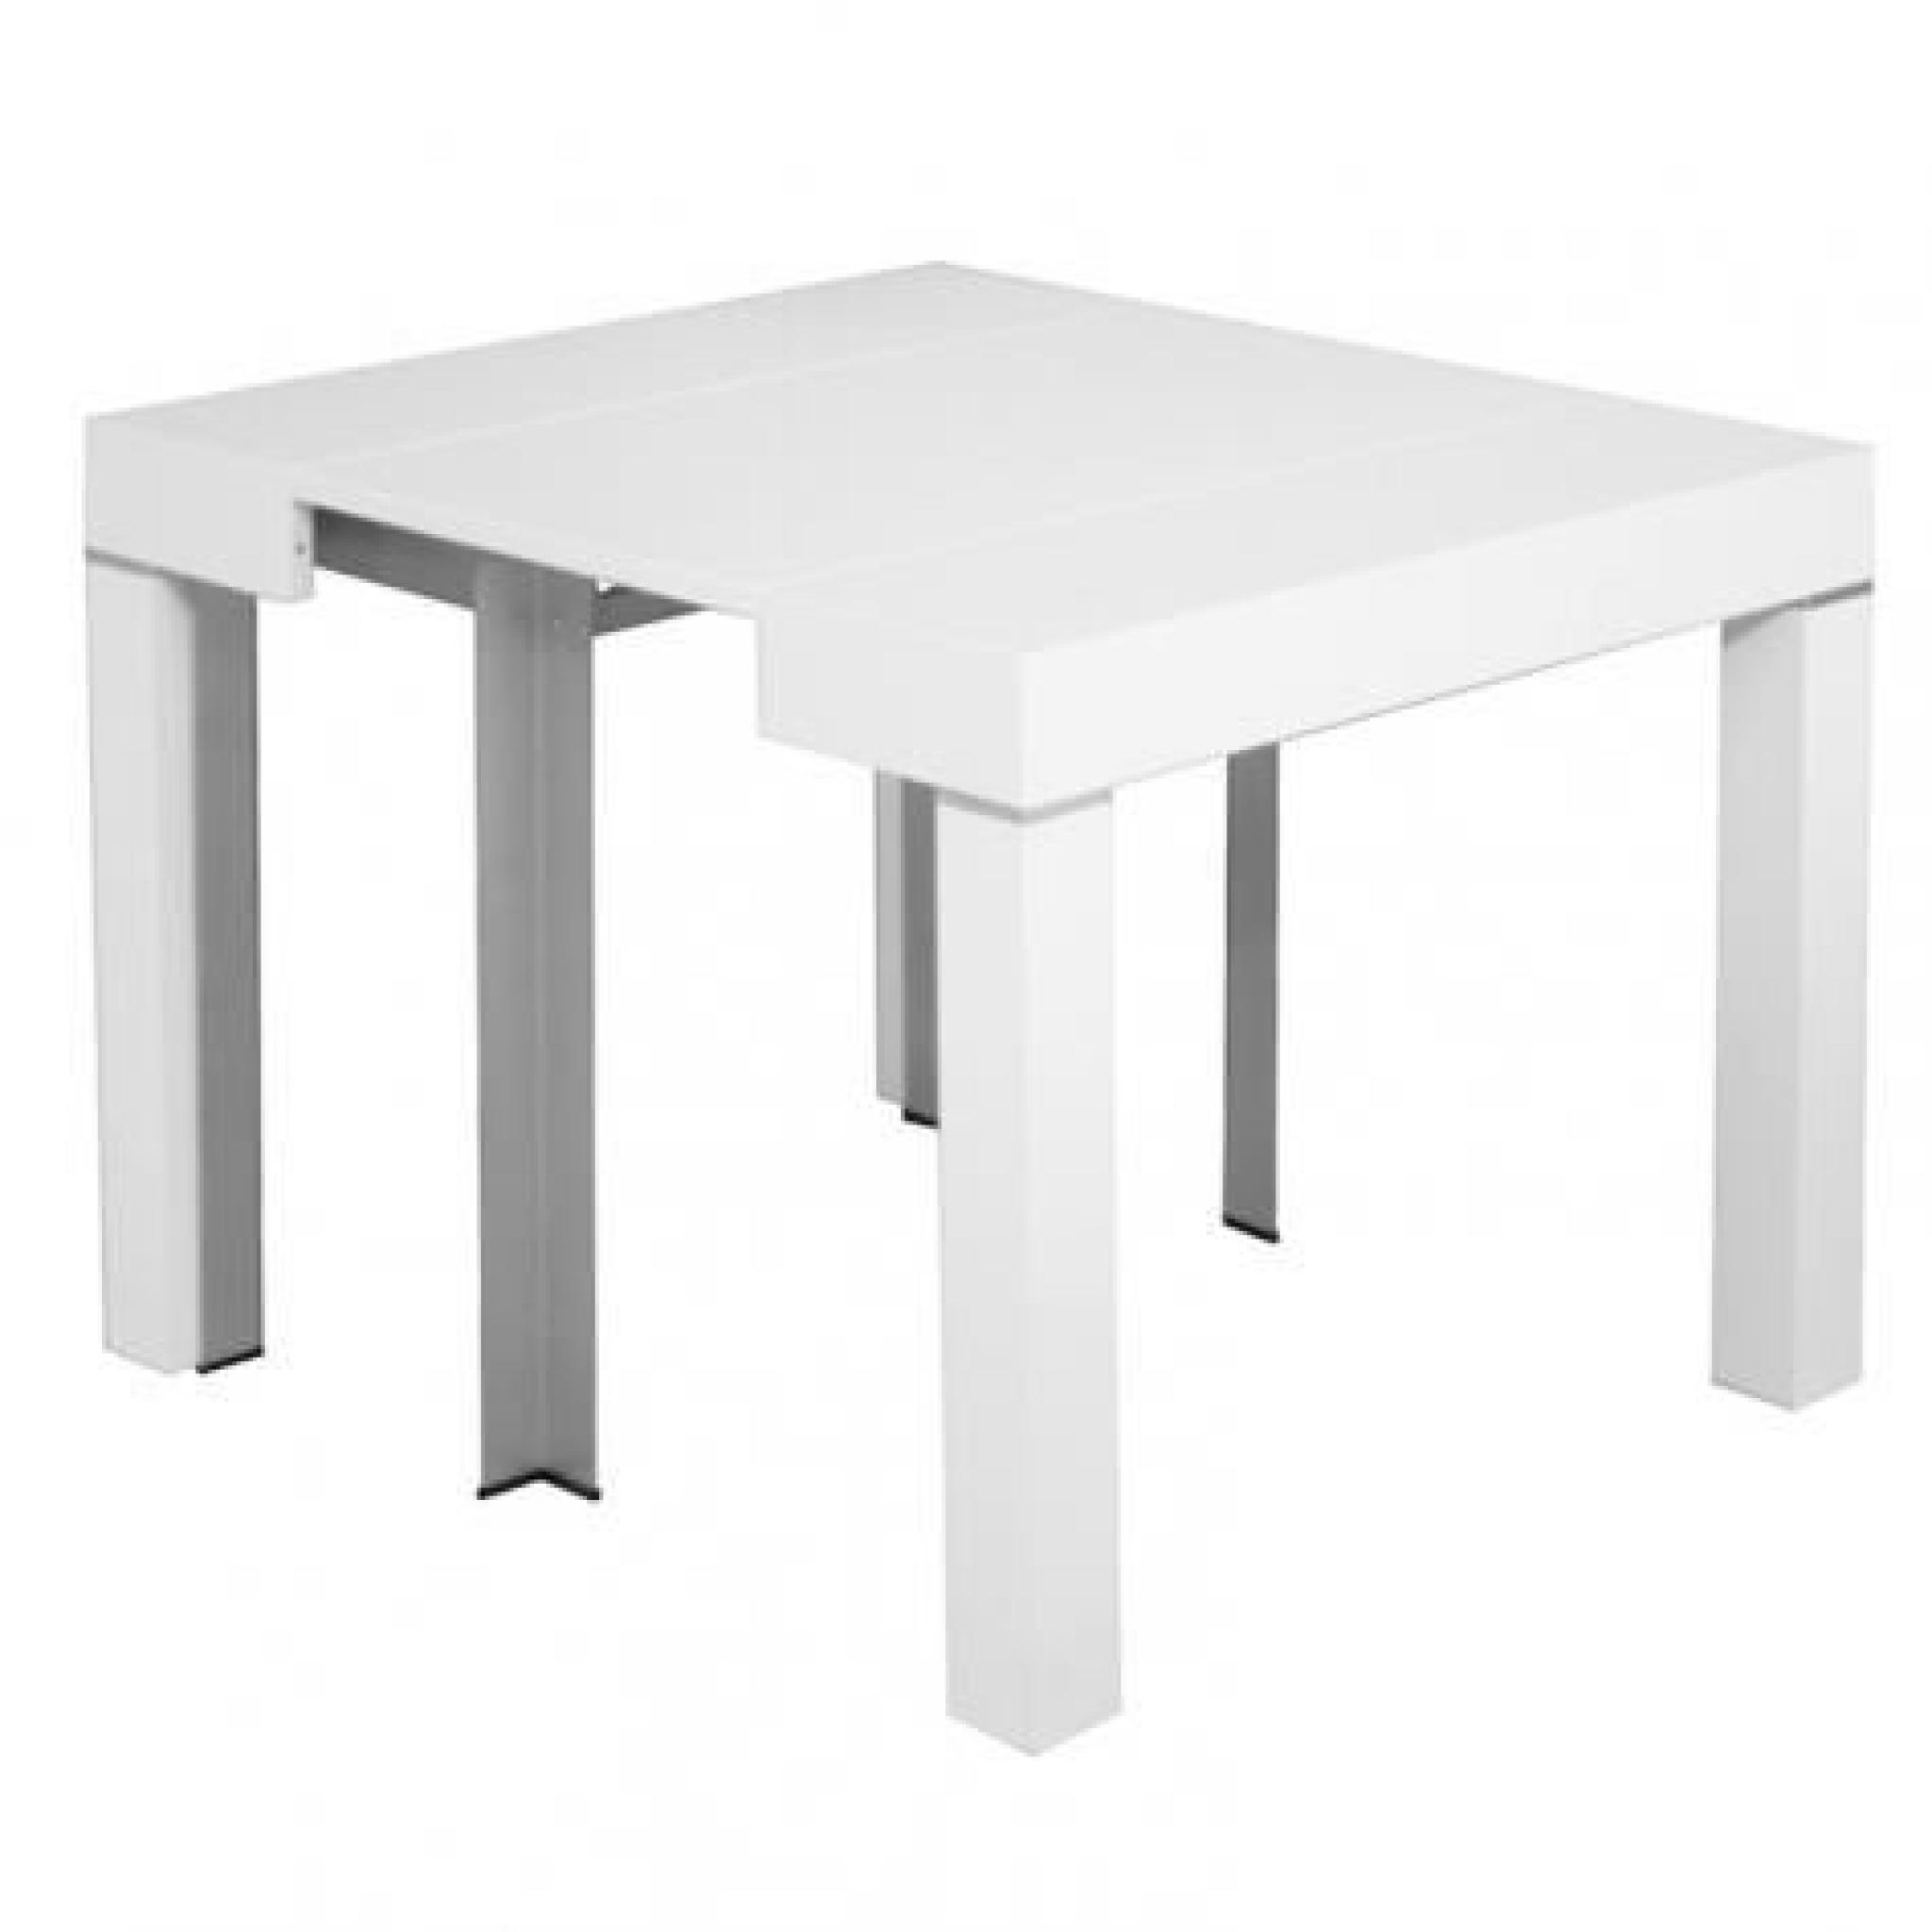 Table murale extensible for Table a manger murale